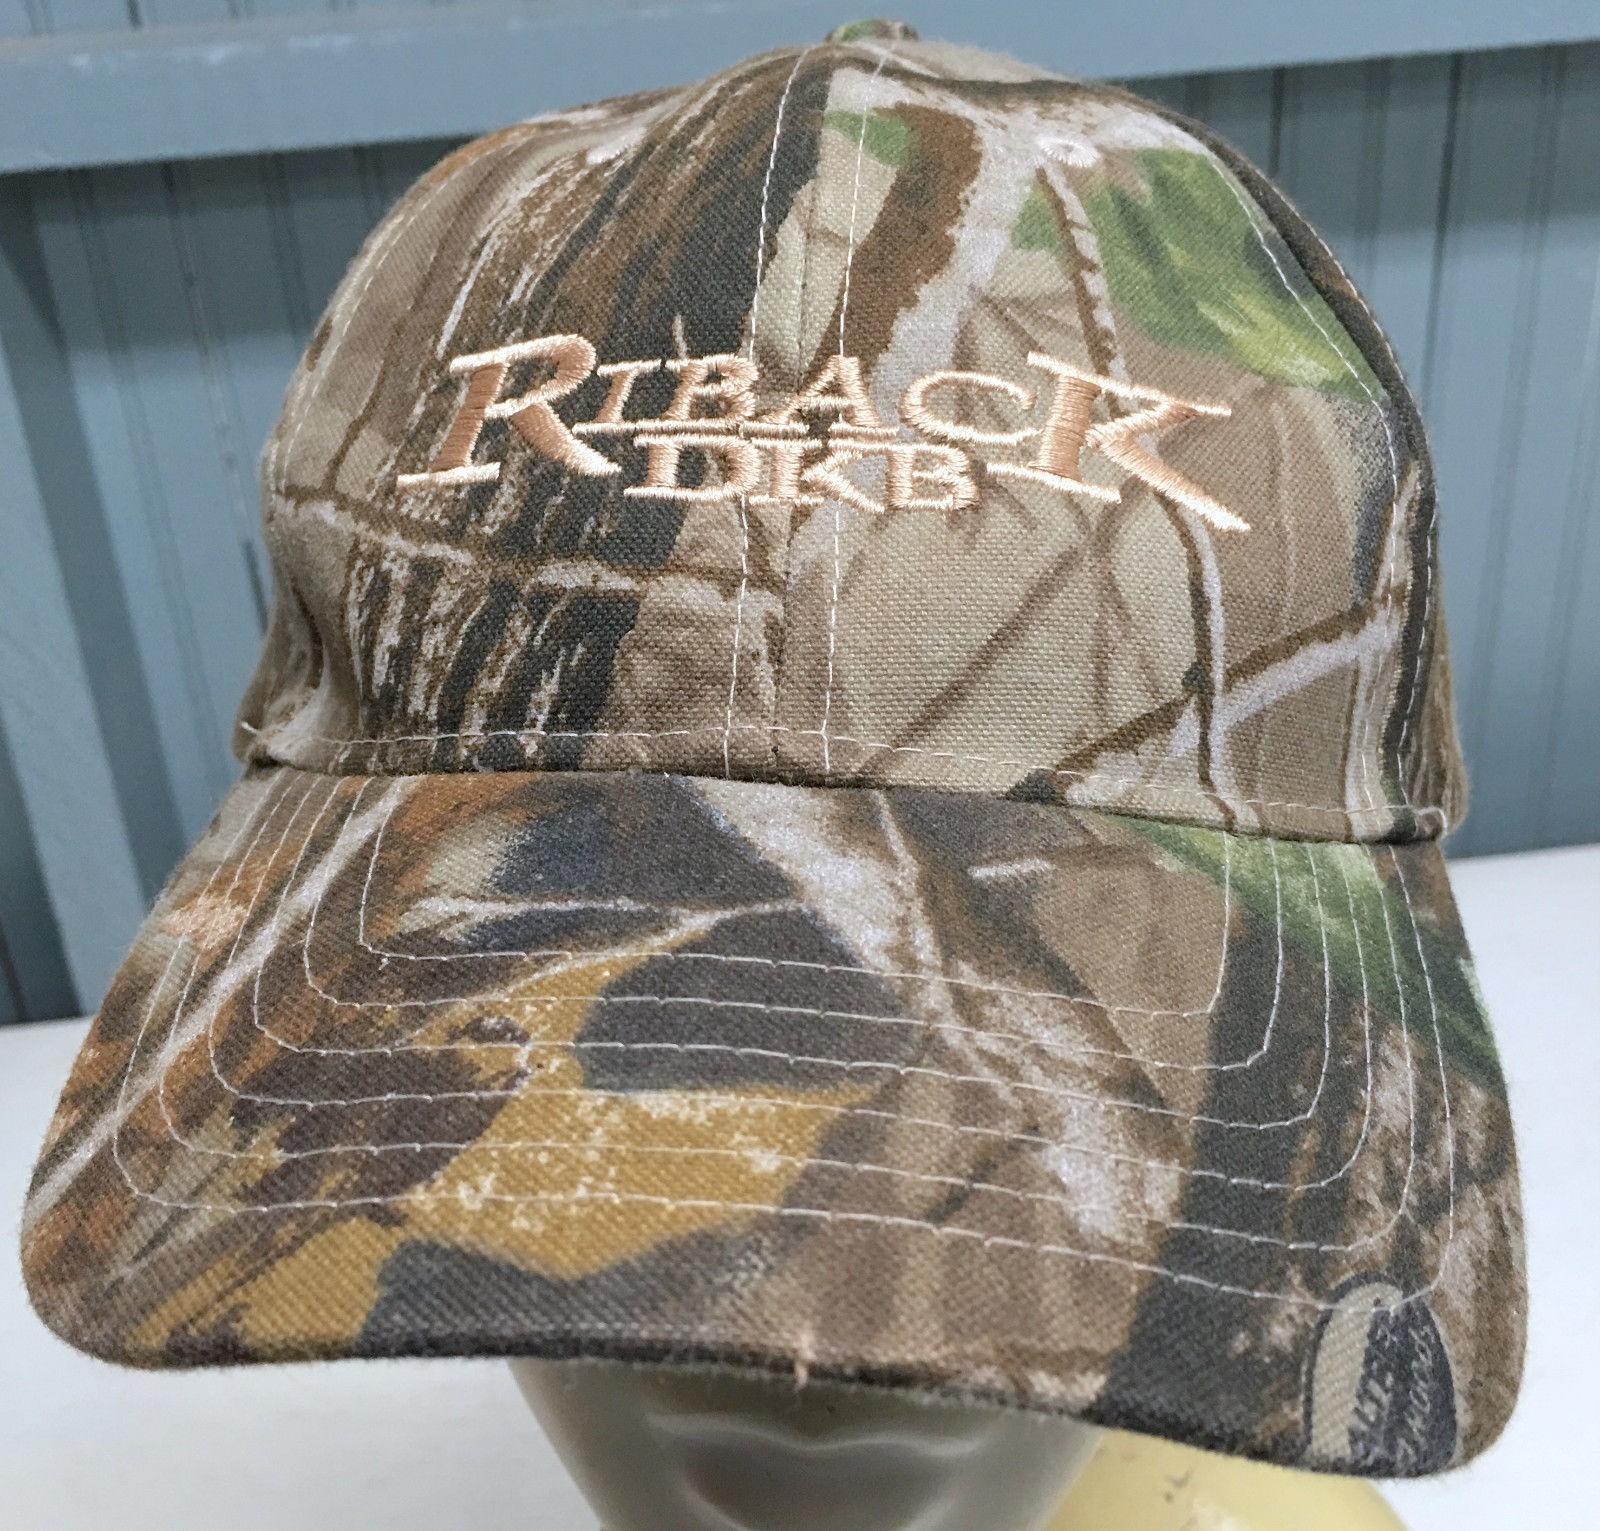 Riback DKB Rudd Realtree Camo Adjustable Hunting Baseball Cap Hat